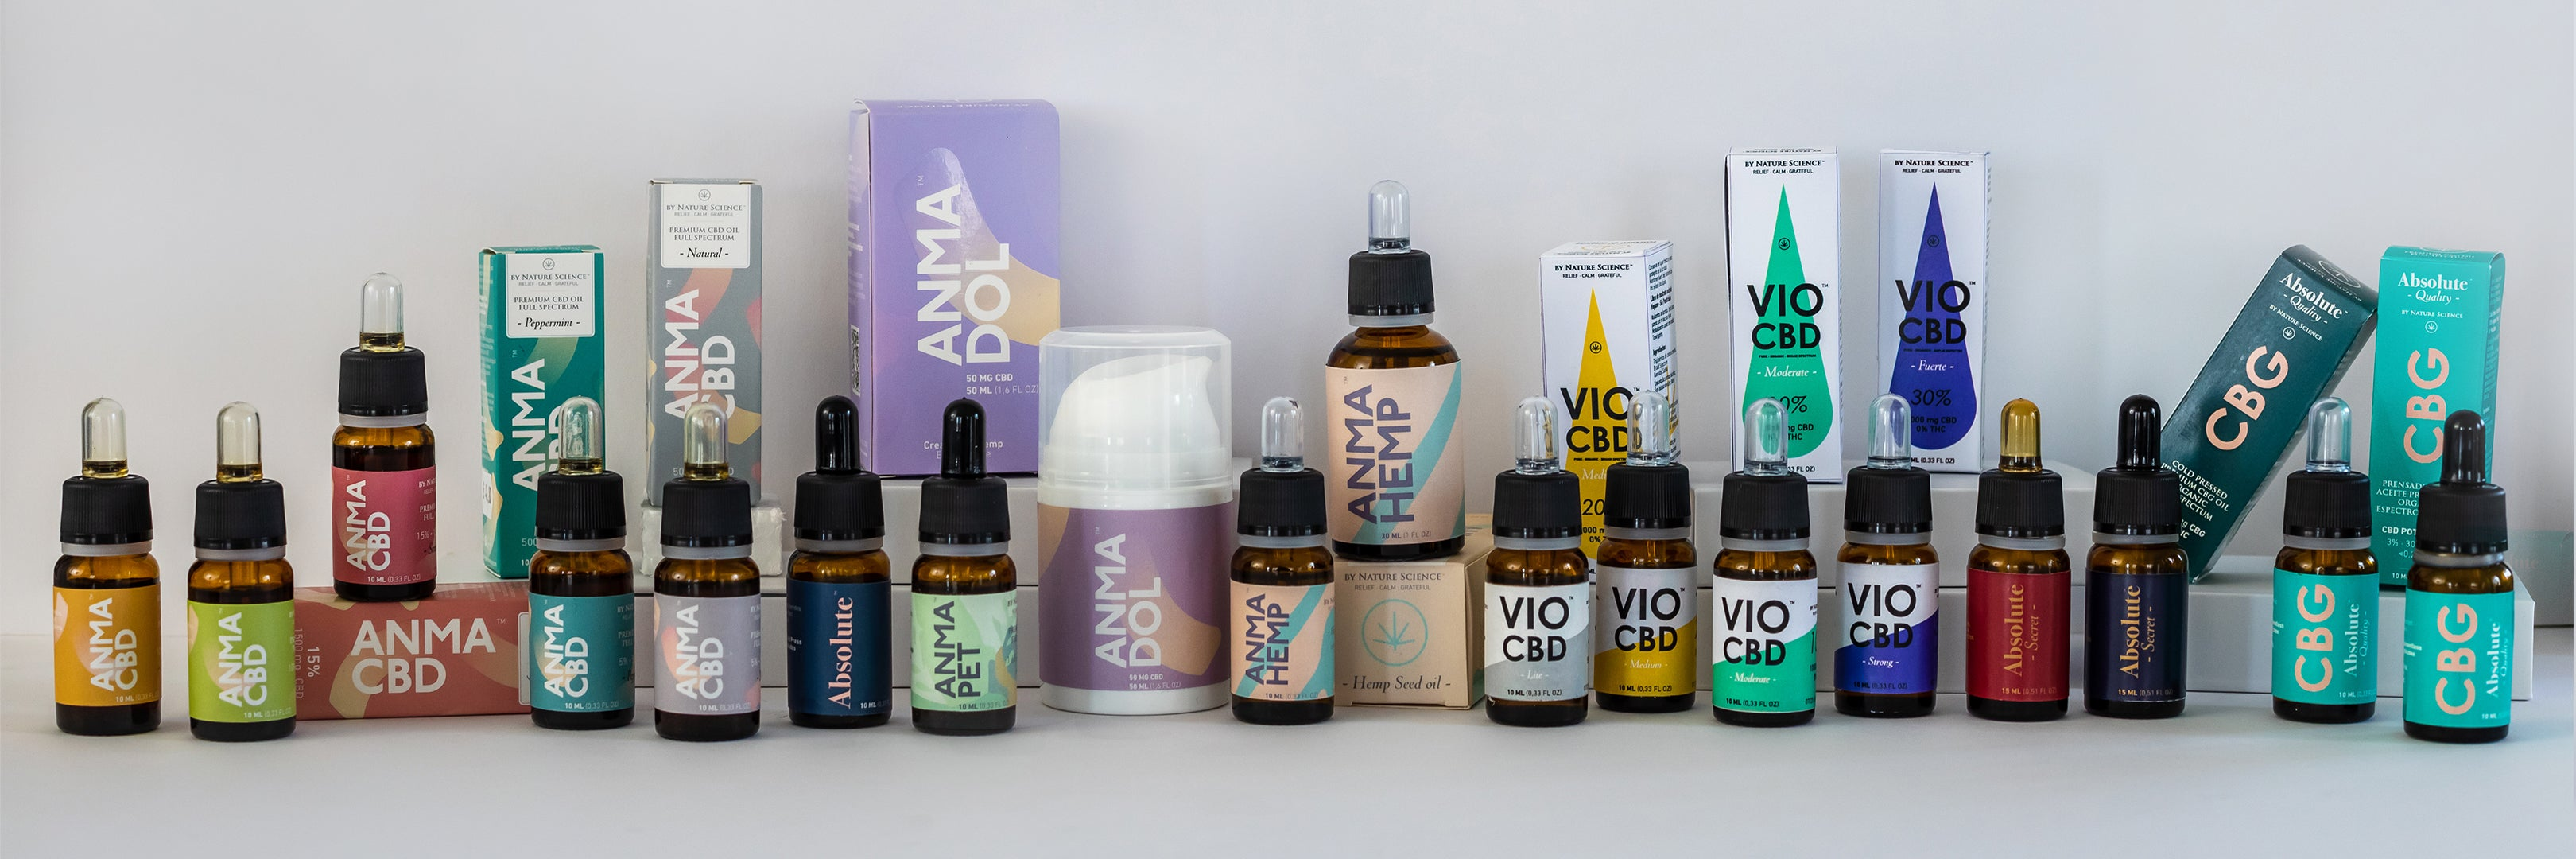 Nature Science Group - Nature Science CBD Products